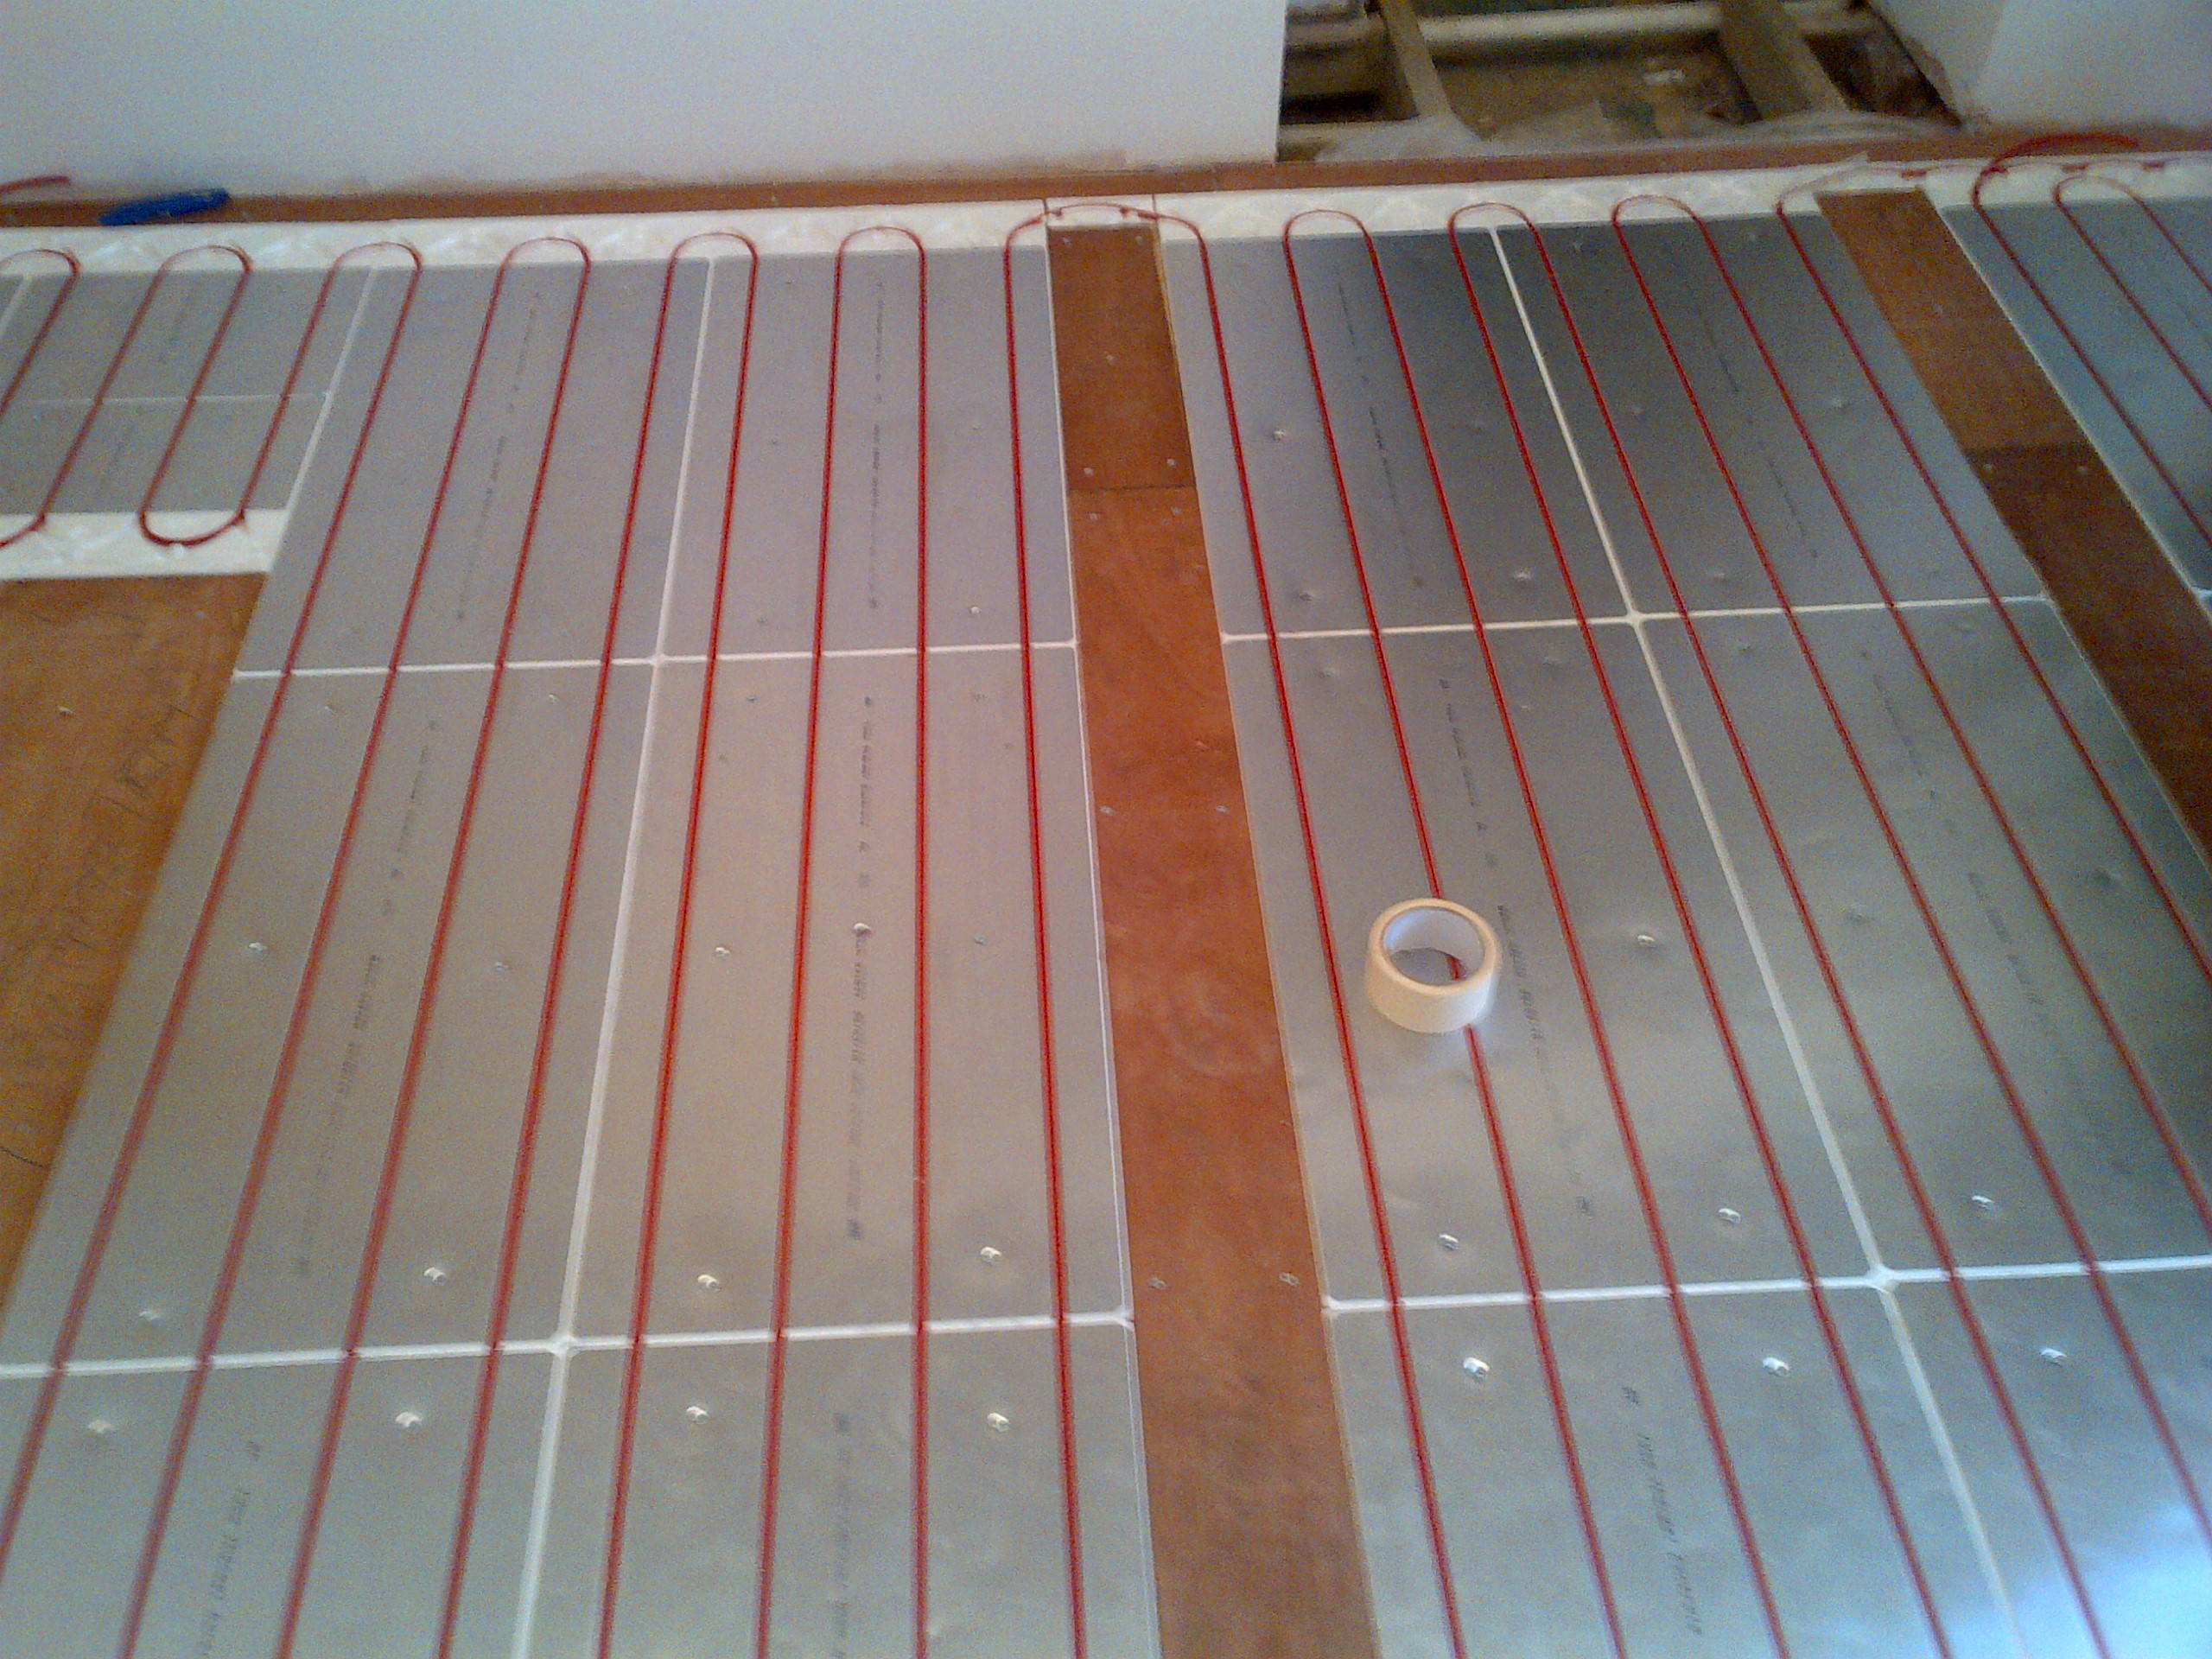 Electric underfloor heating water underfloor heating under img 20120208 00029g dailygadgetfo Choice Image